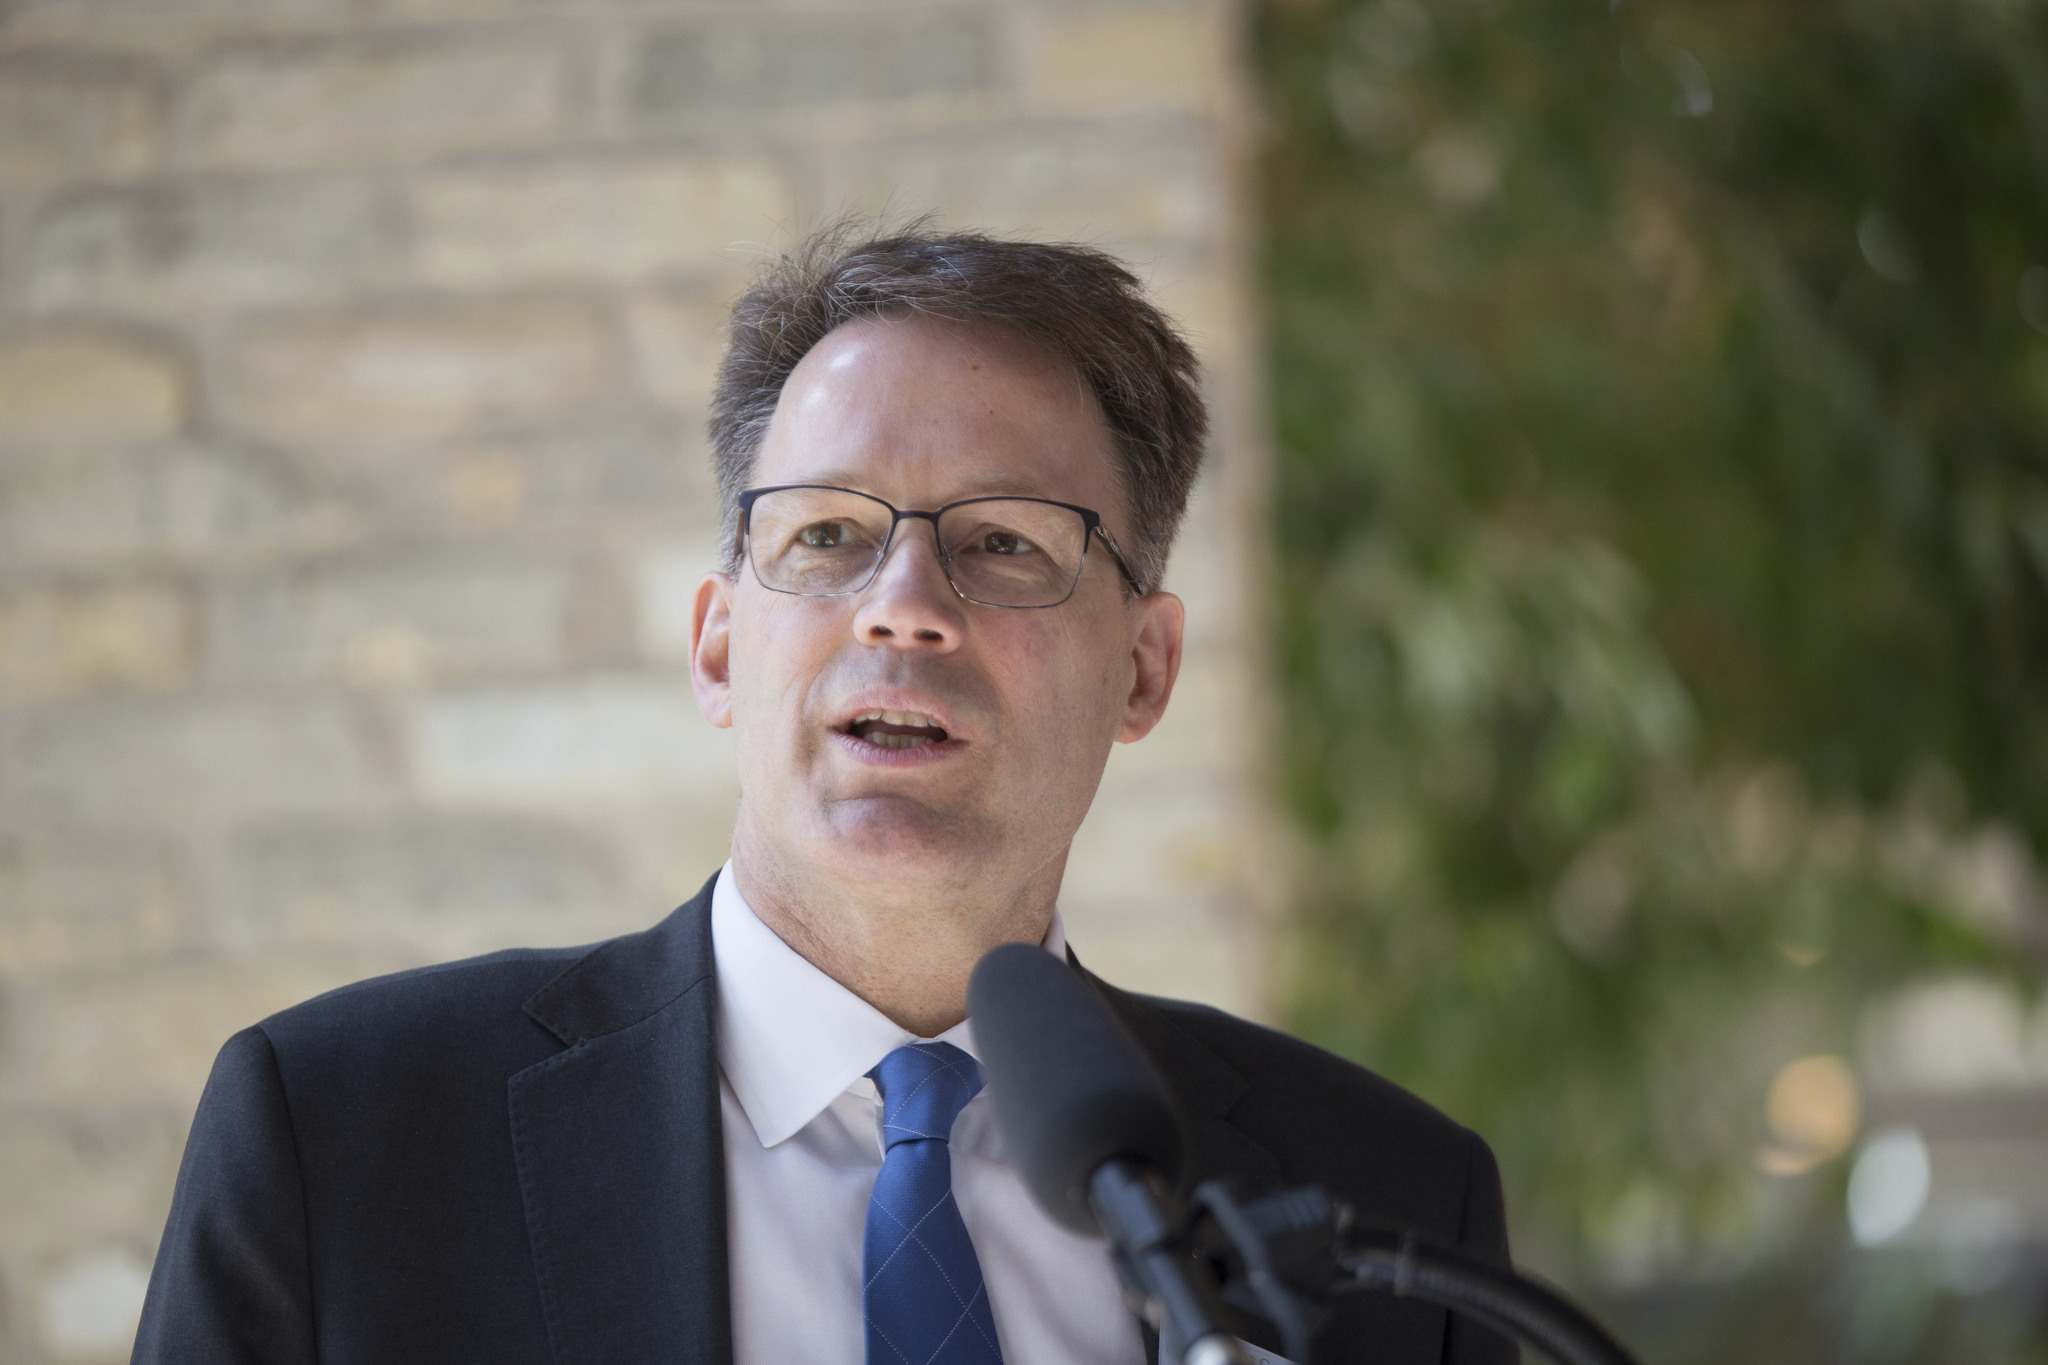 JEN DOERKSEN / WINNIPEG FREE PRESS FILES</p><p>Red River College President and CEO Paul Vogt says the institution is operating under &#34;increased fiscal restraint&#34; due, in part, to a decrease in operating grants.</p>